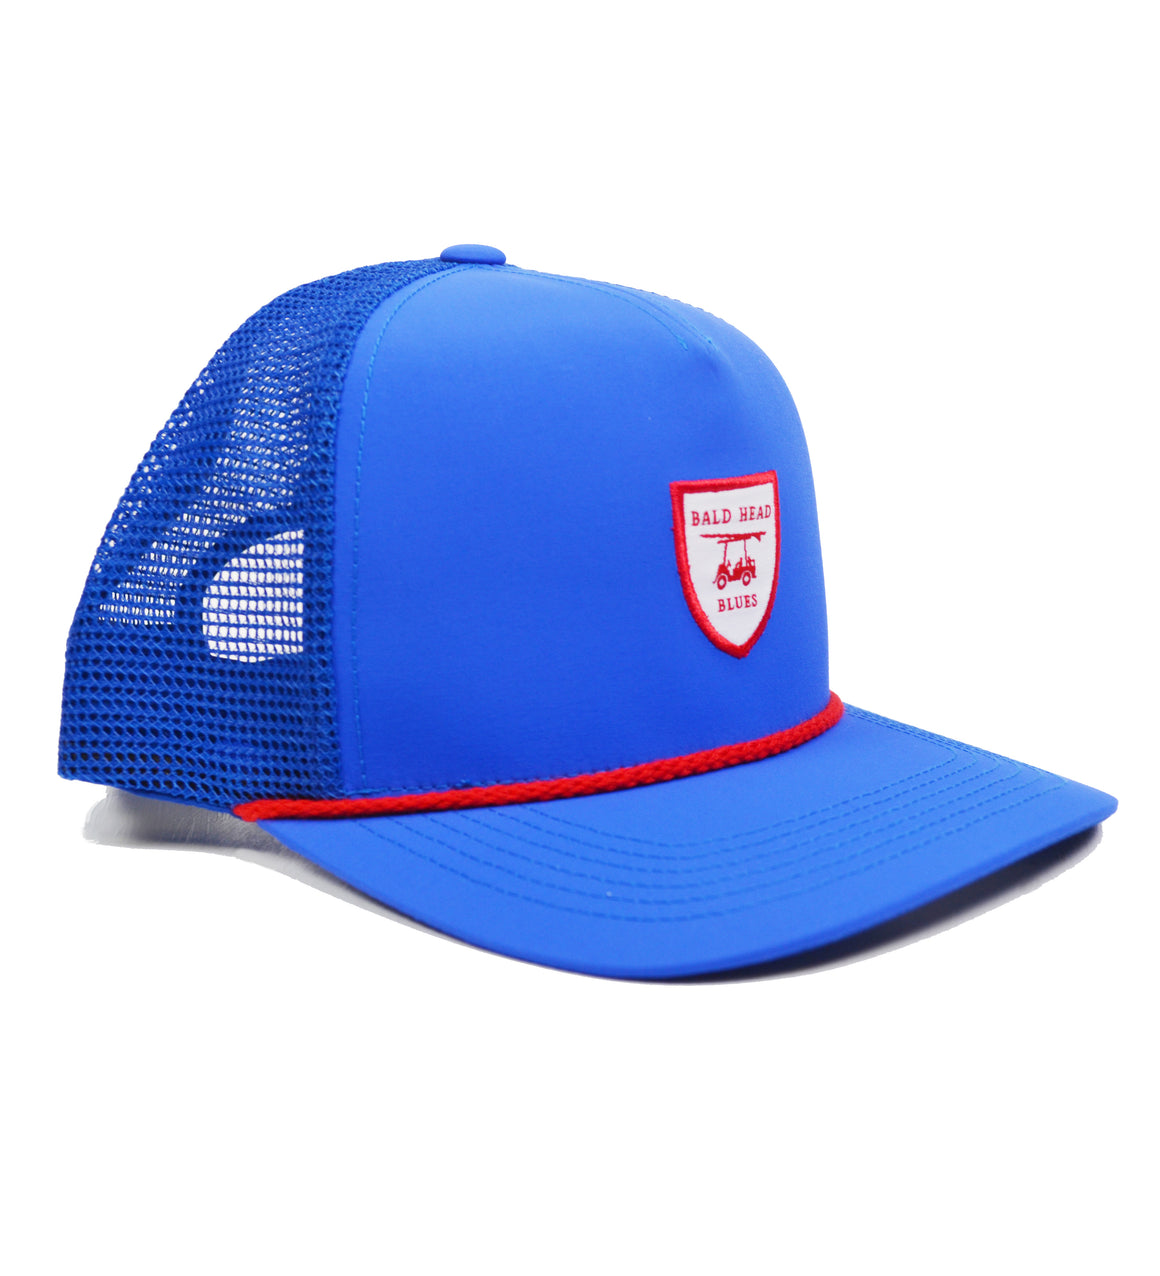 NEW Performance Trucker Hat - Blue